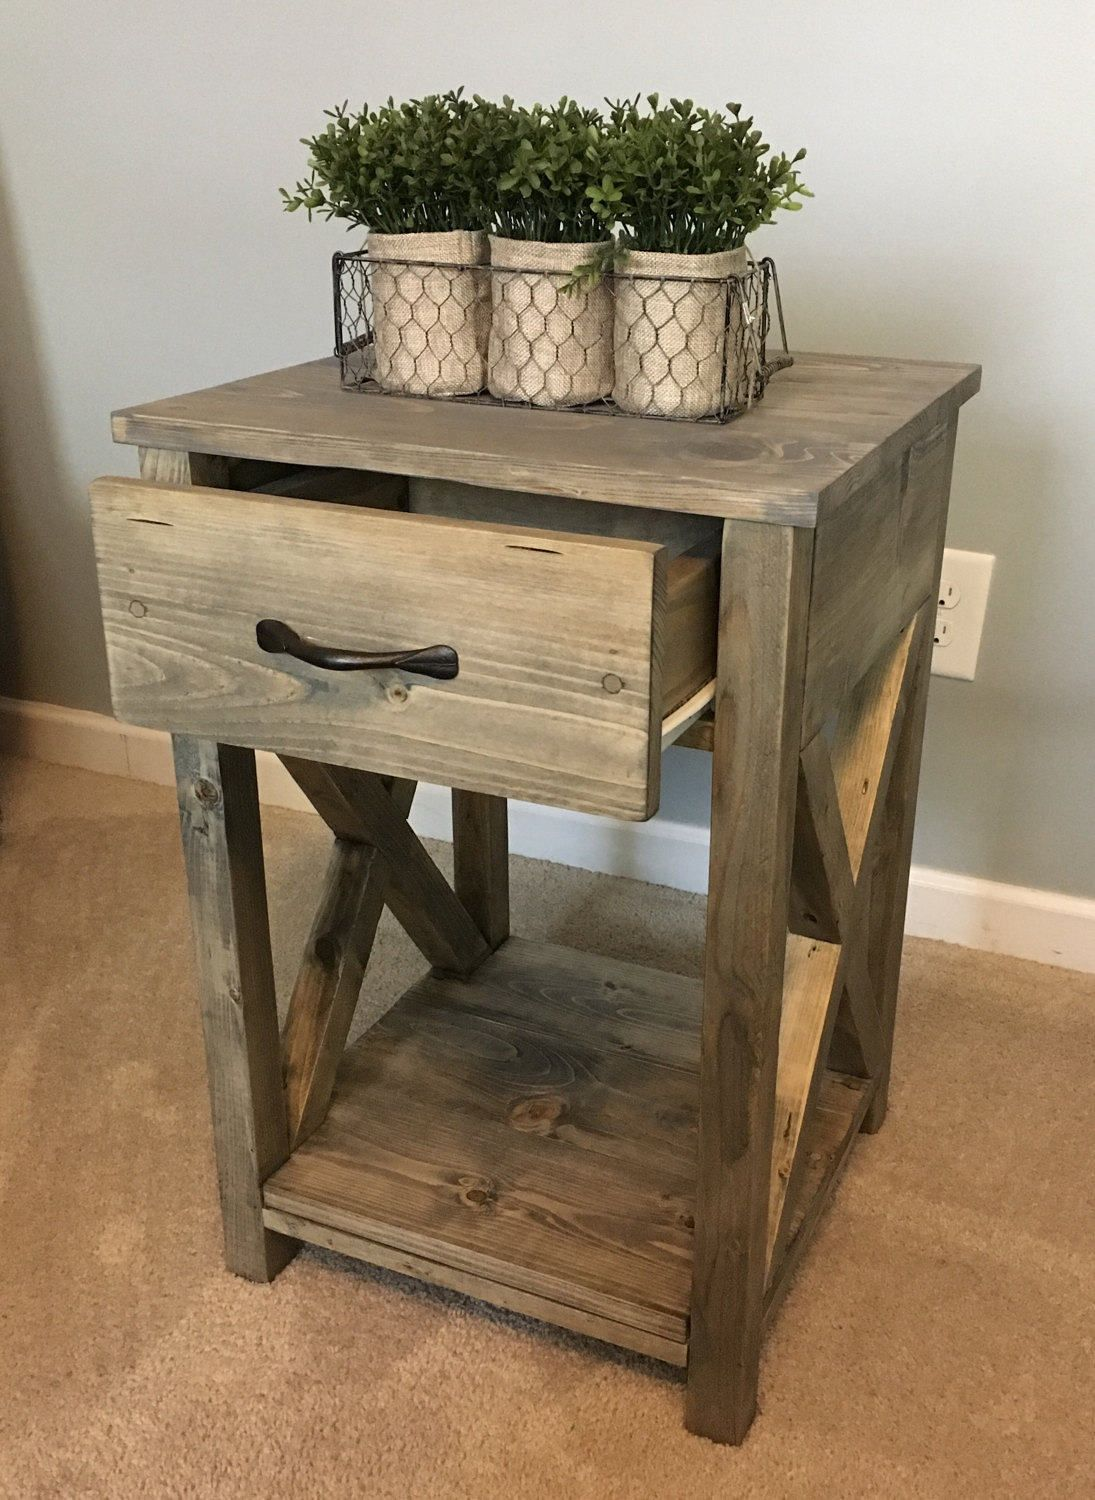 nightstand side table end for the home bedroom rustic tables diy black pipe metal wire coffee slate grey tablecloths long industrial dark brown leather lounge kmart ladies tops